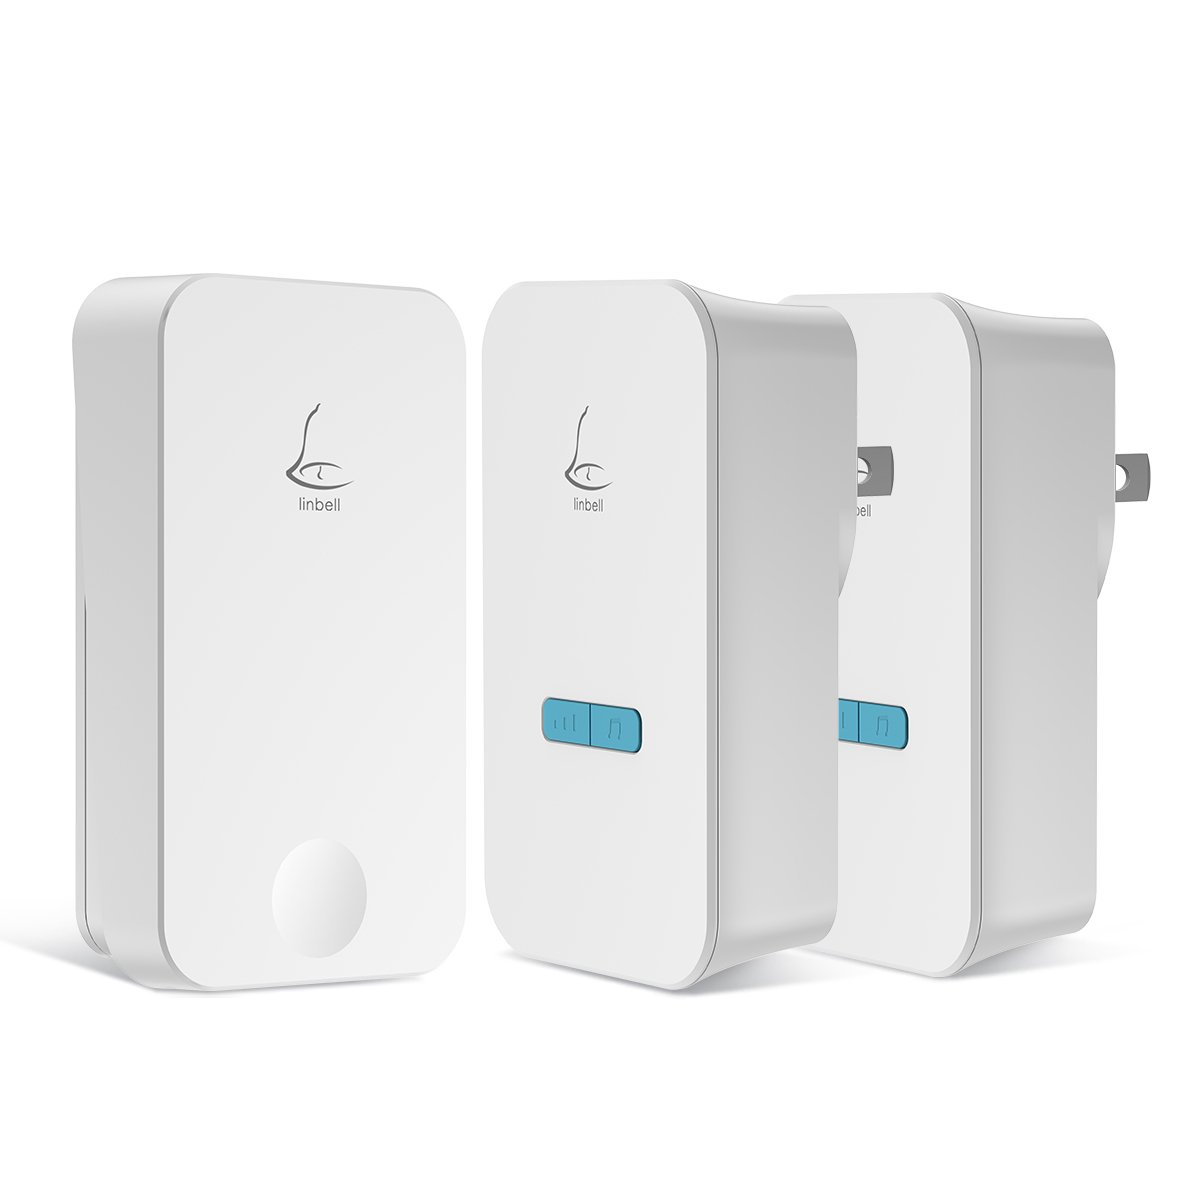 Linbell Self Powered Wireless Doorbell Kit with 1 Remote Button and 2 Plug in Receivers, 36 Chimes, 5 Volume Levels, LED Indicator, No Batteries Required for Remote Button and Receiver